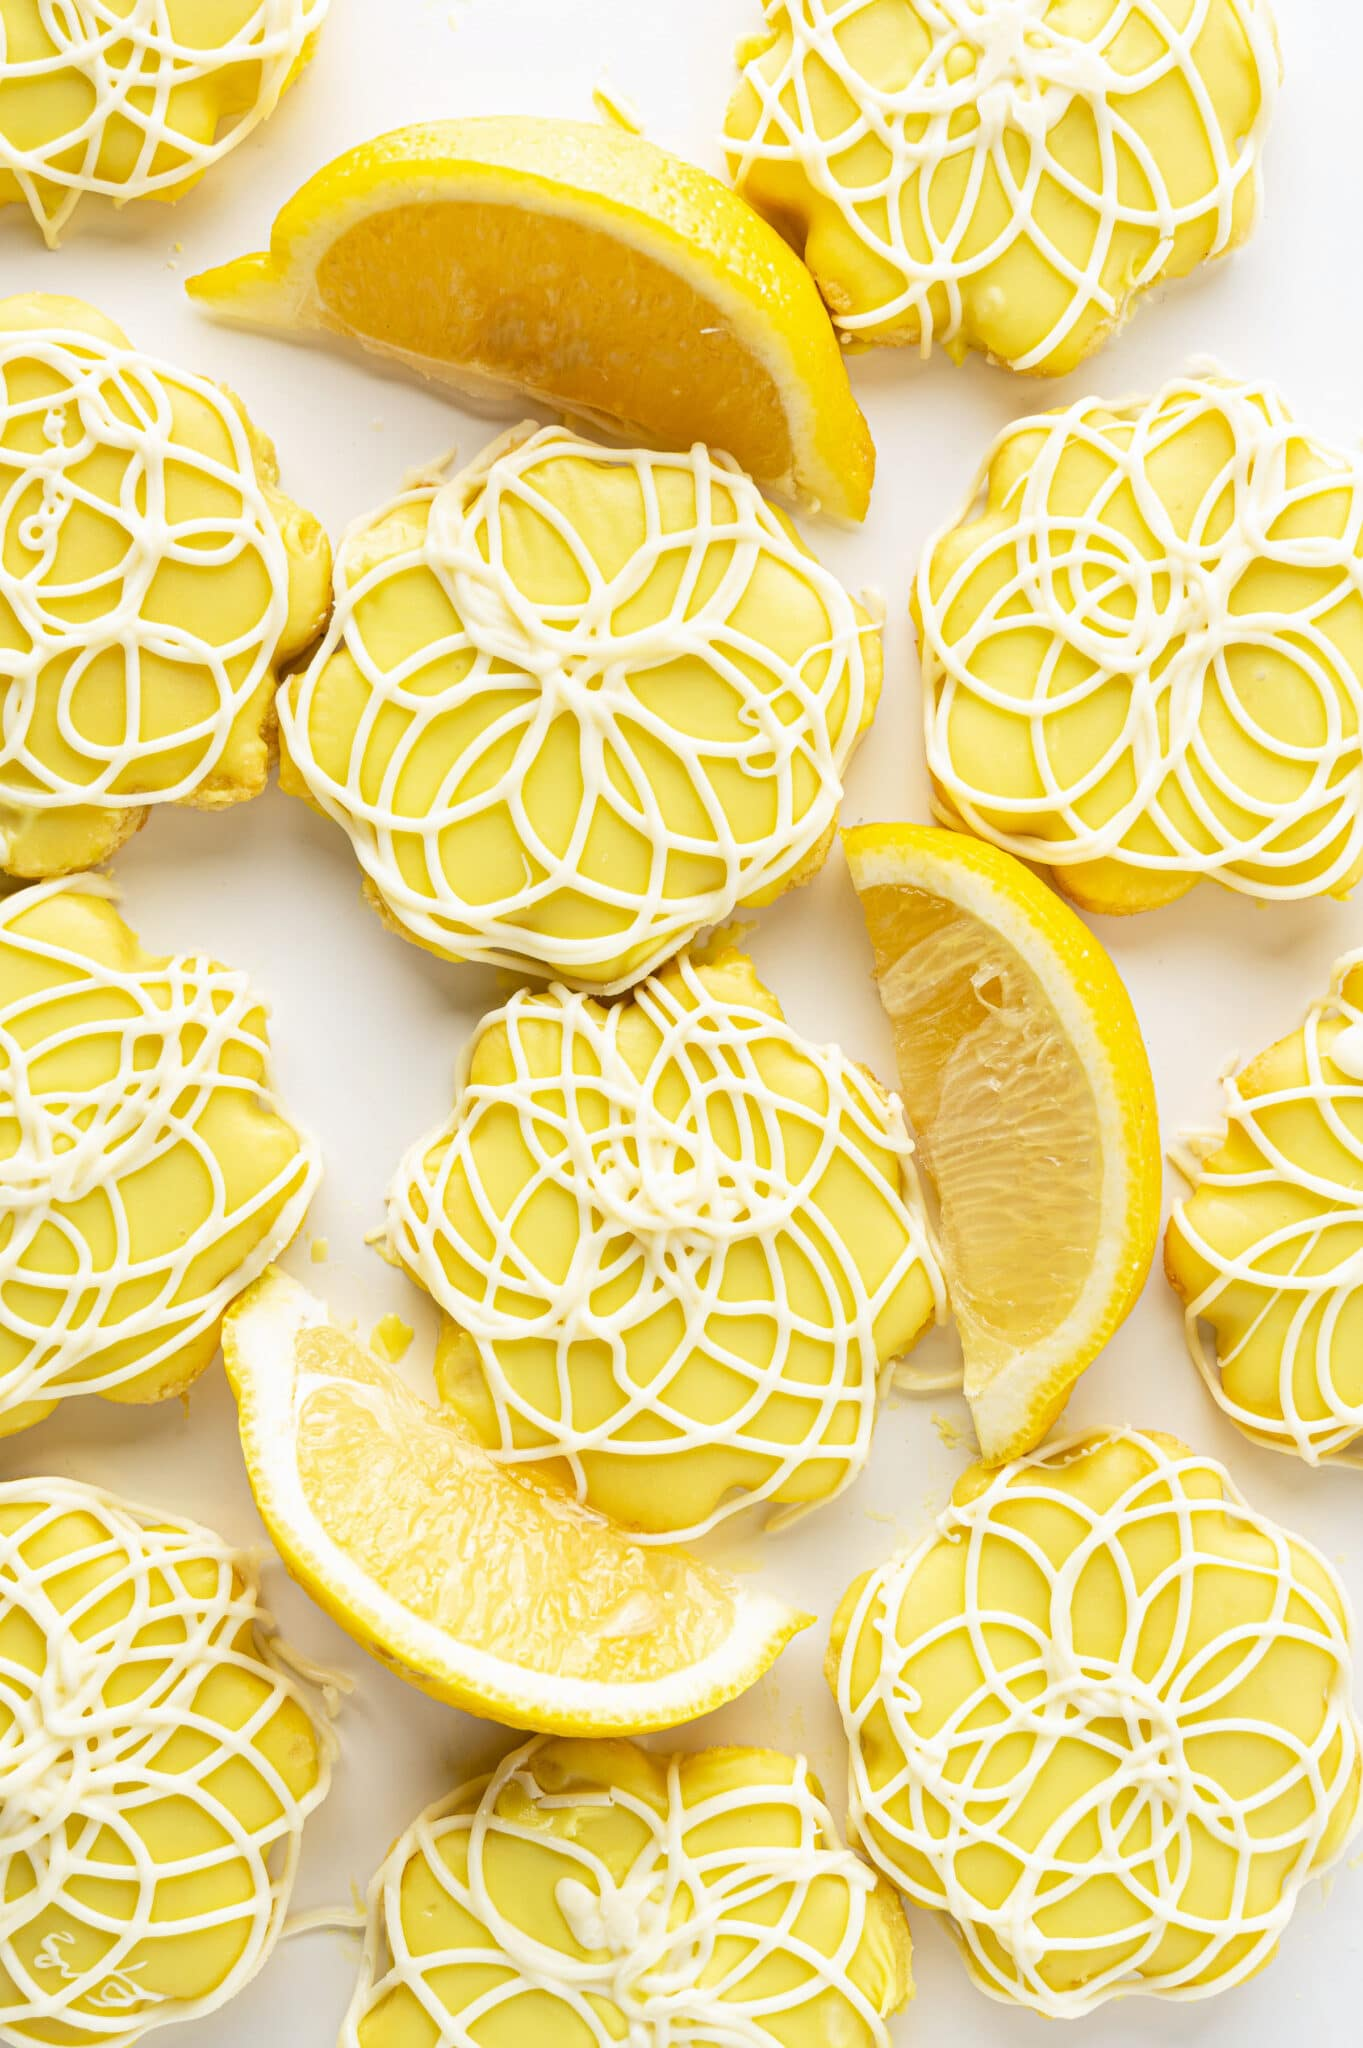 A tray of bright yellow lemon sugar cookies with white chocolate swirls with slices of fresh lemon.